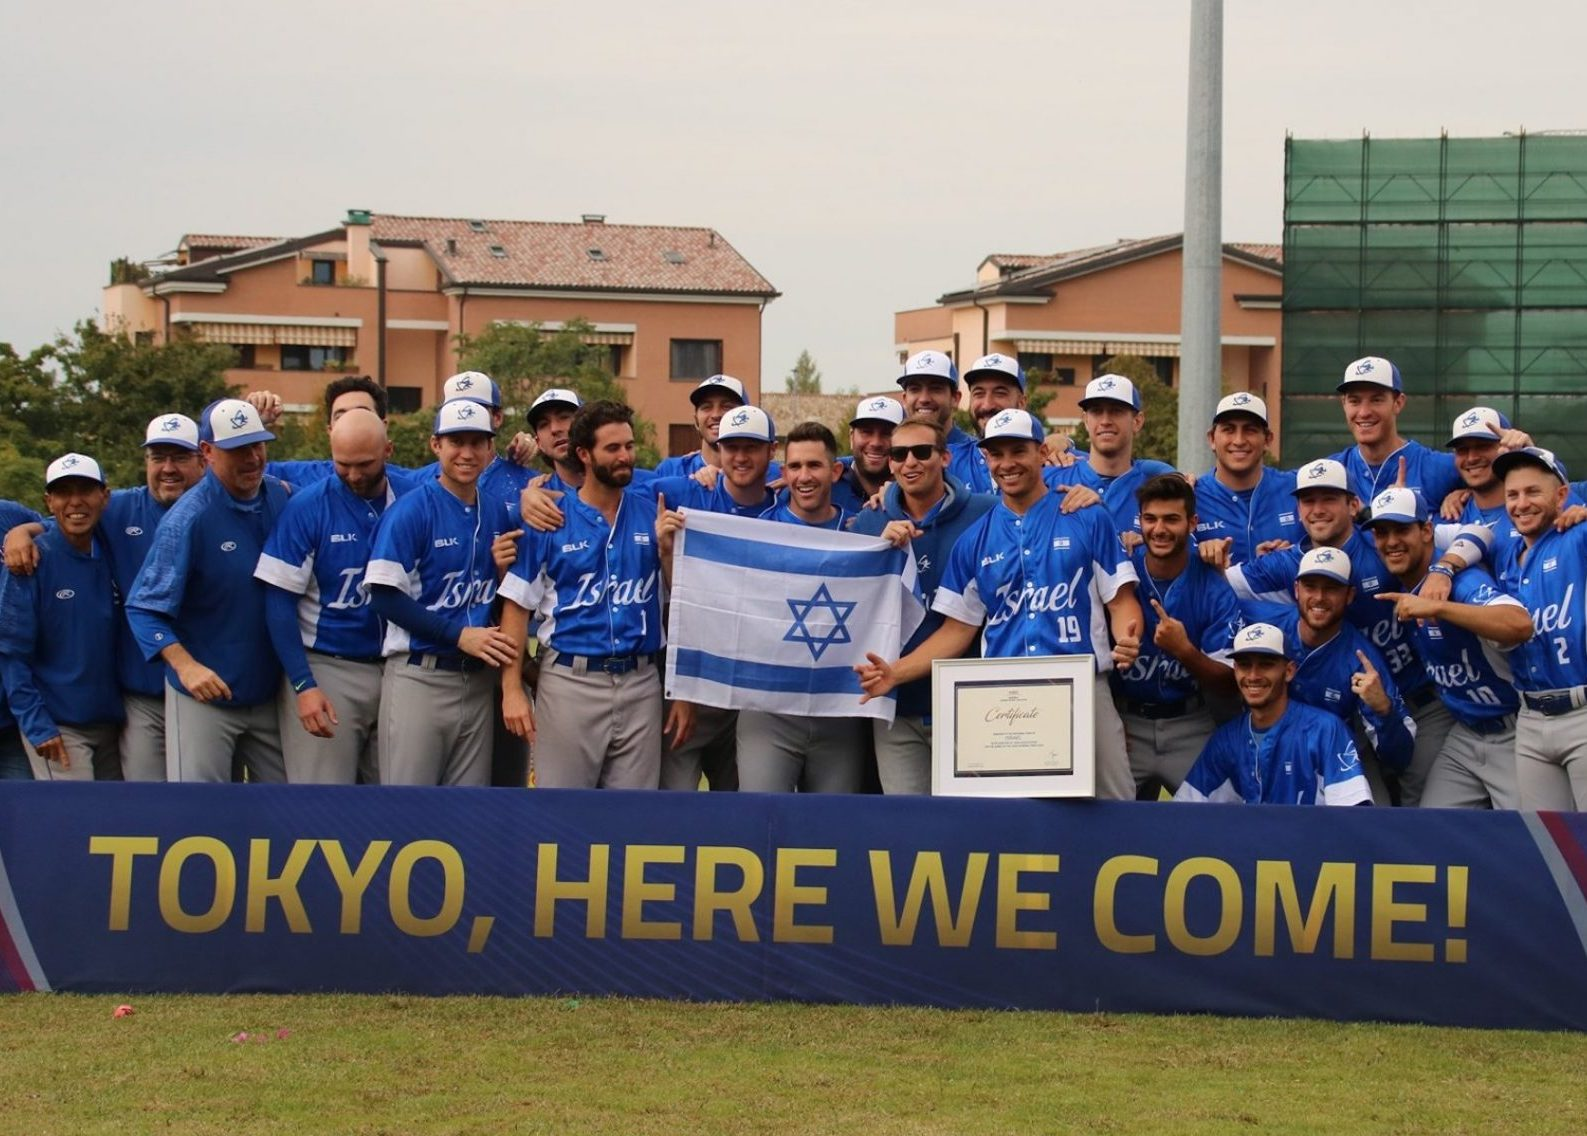 """players in their blue Israel baseball uniforms pose with a sign that reads, """"Tokyo, here we come!"""""""